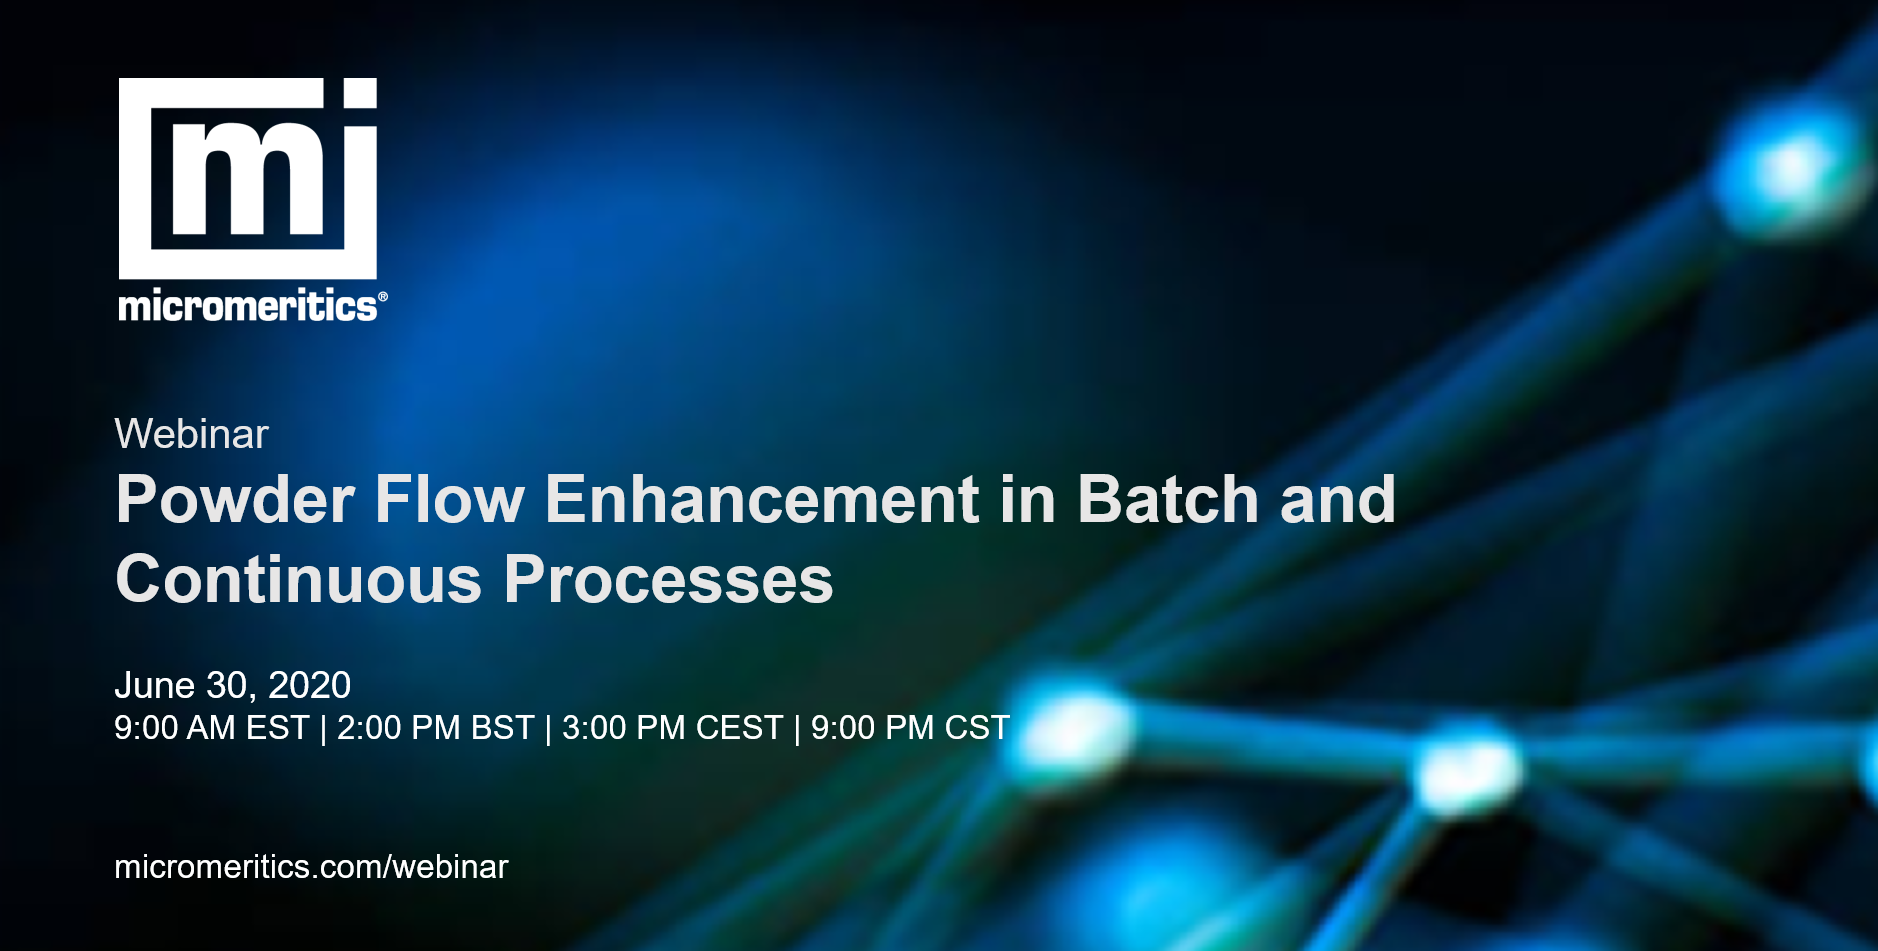 Webinar - powder flow enhancement in batch and continuous processes